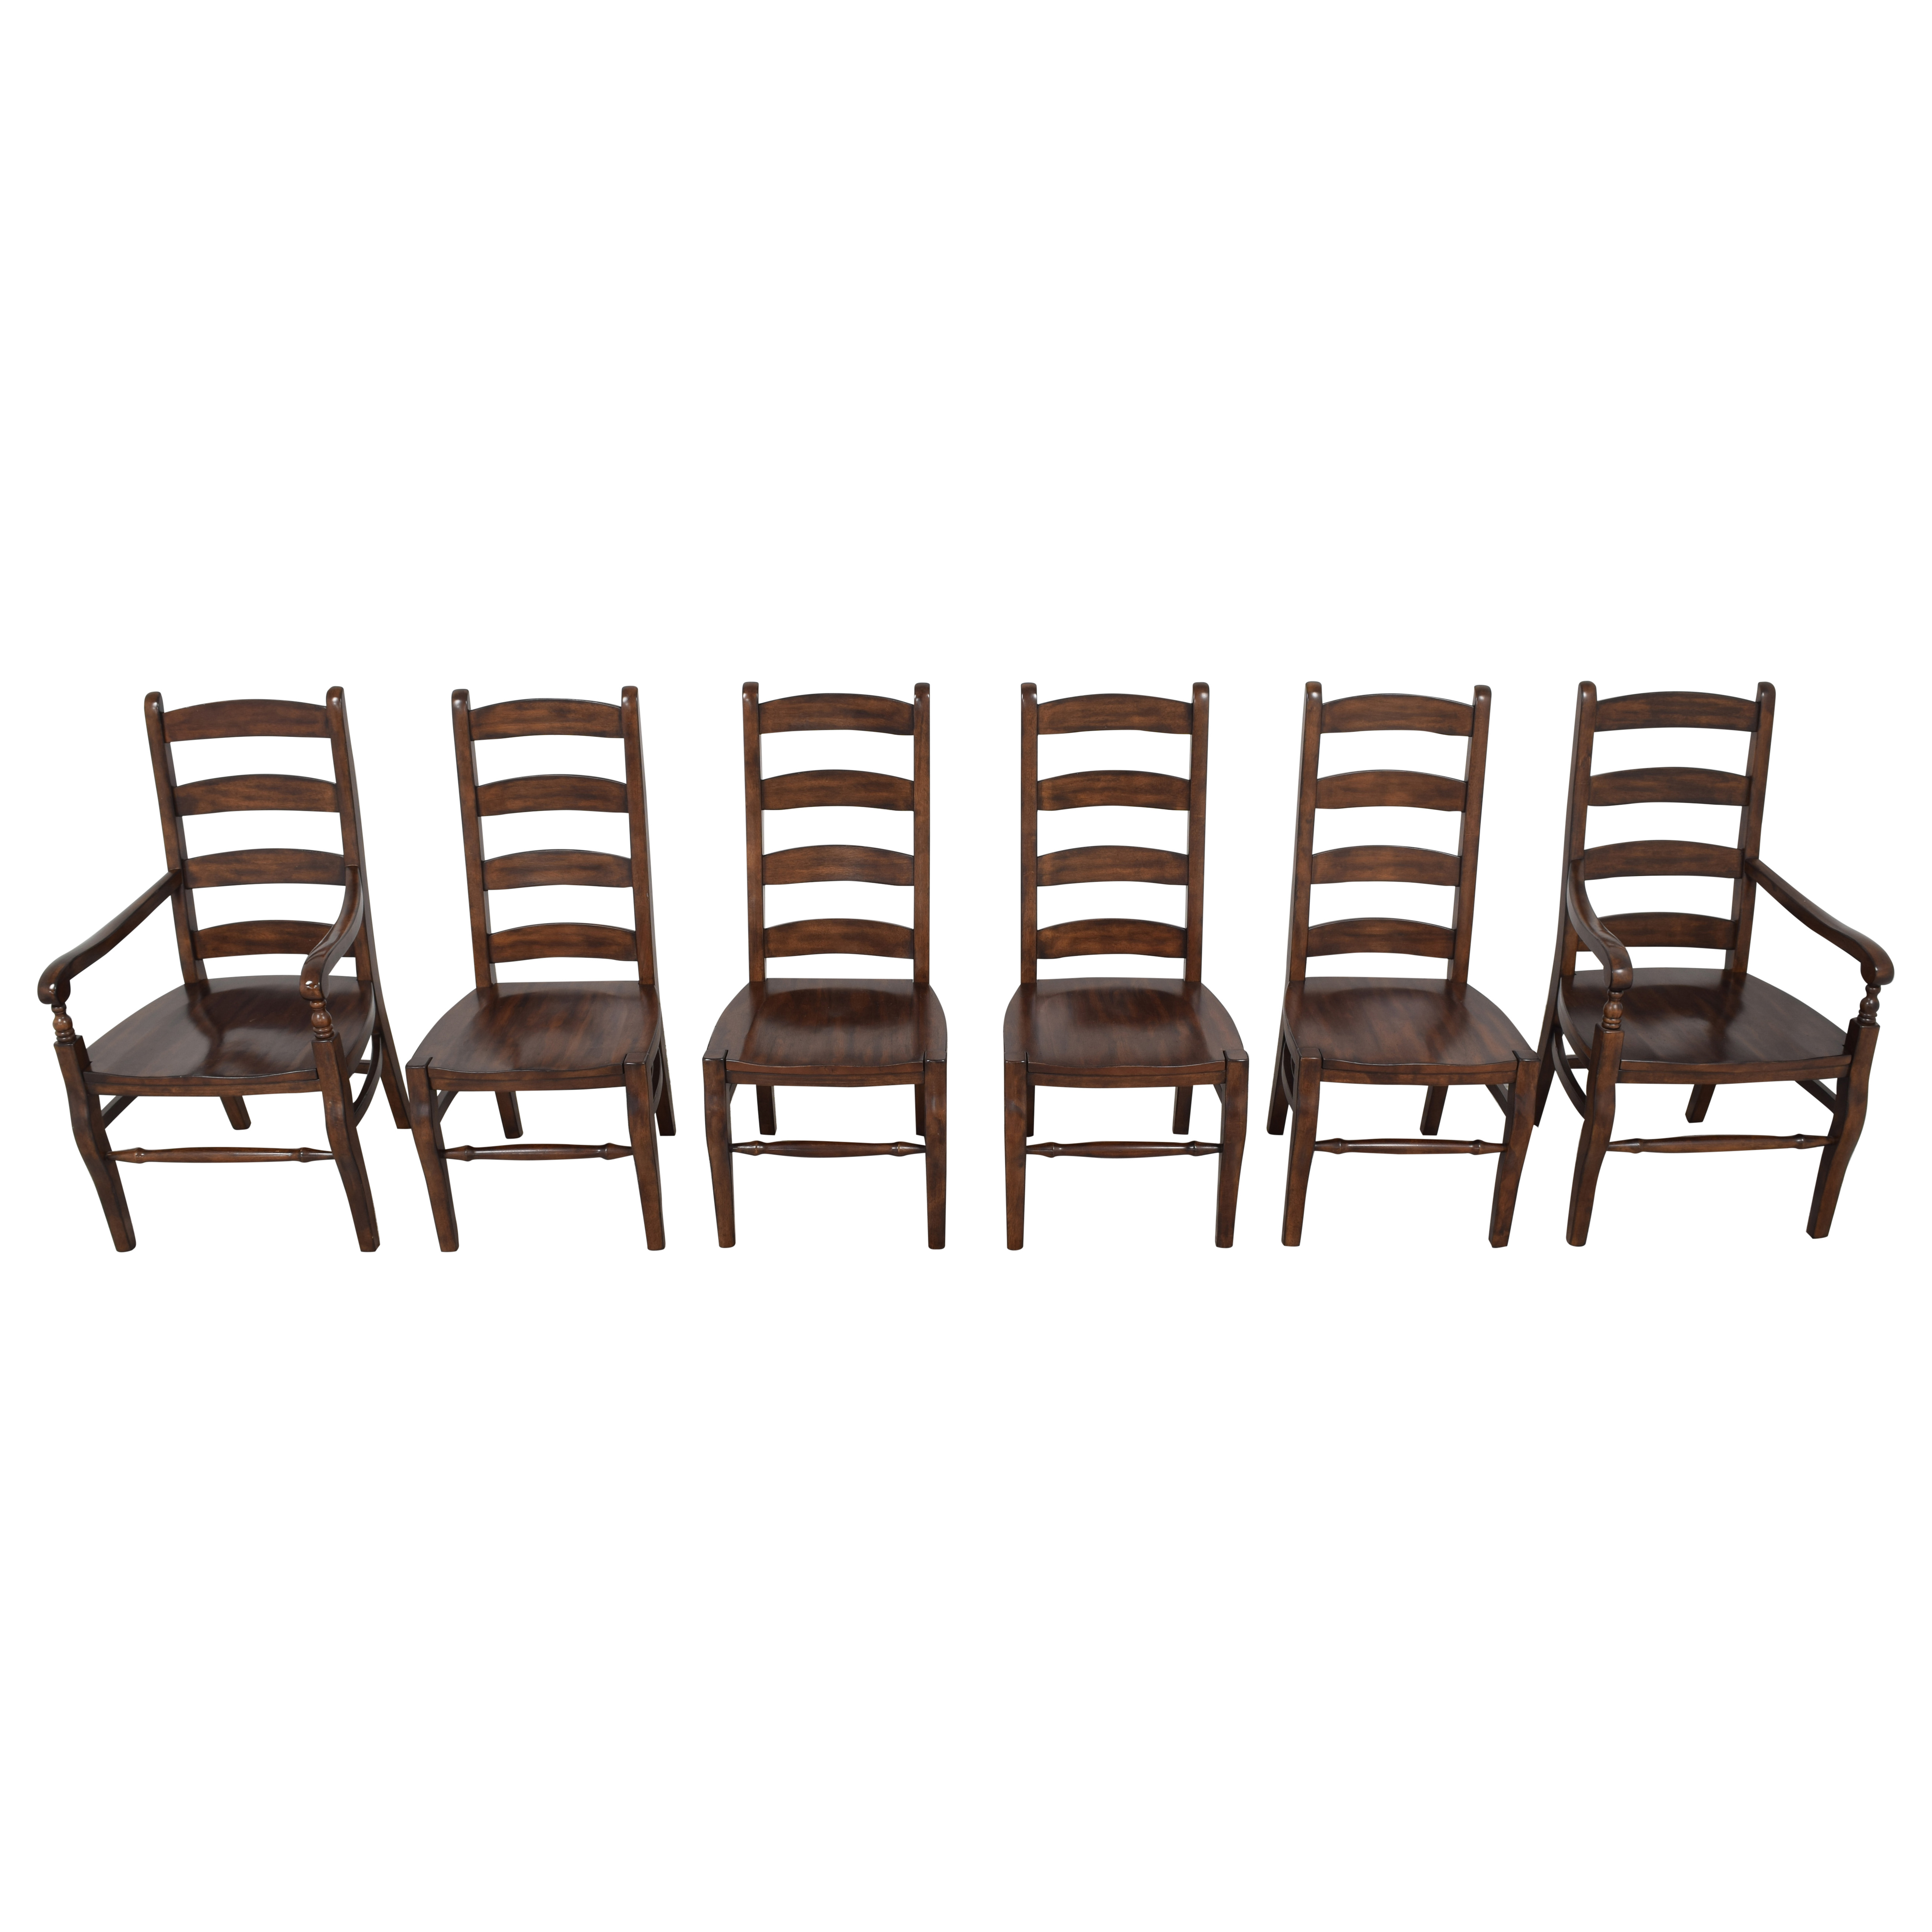 buy Pottery Barn Wynn Ladderback Dining Chairs Pottery Barn Chairs